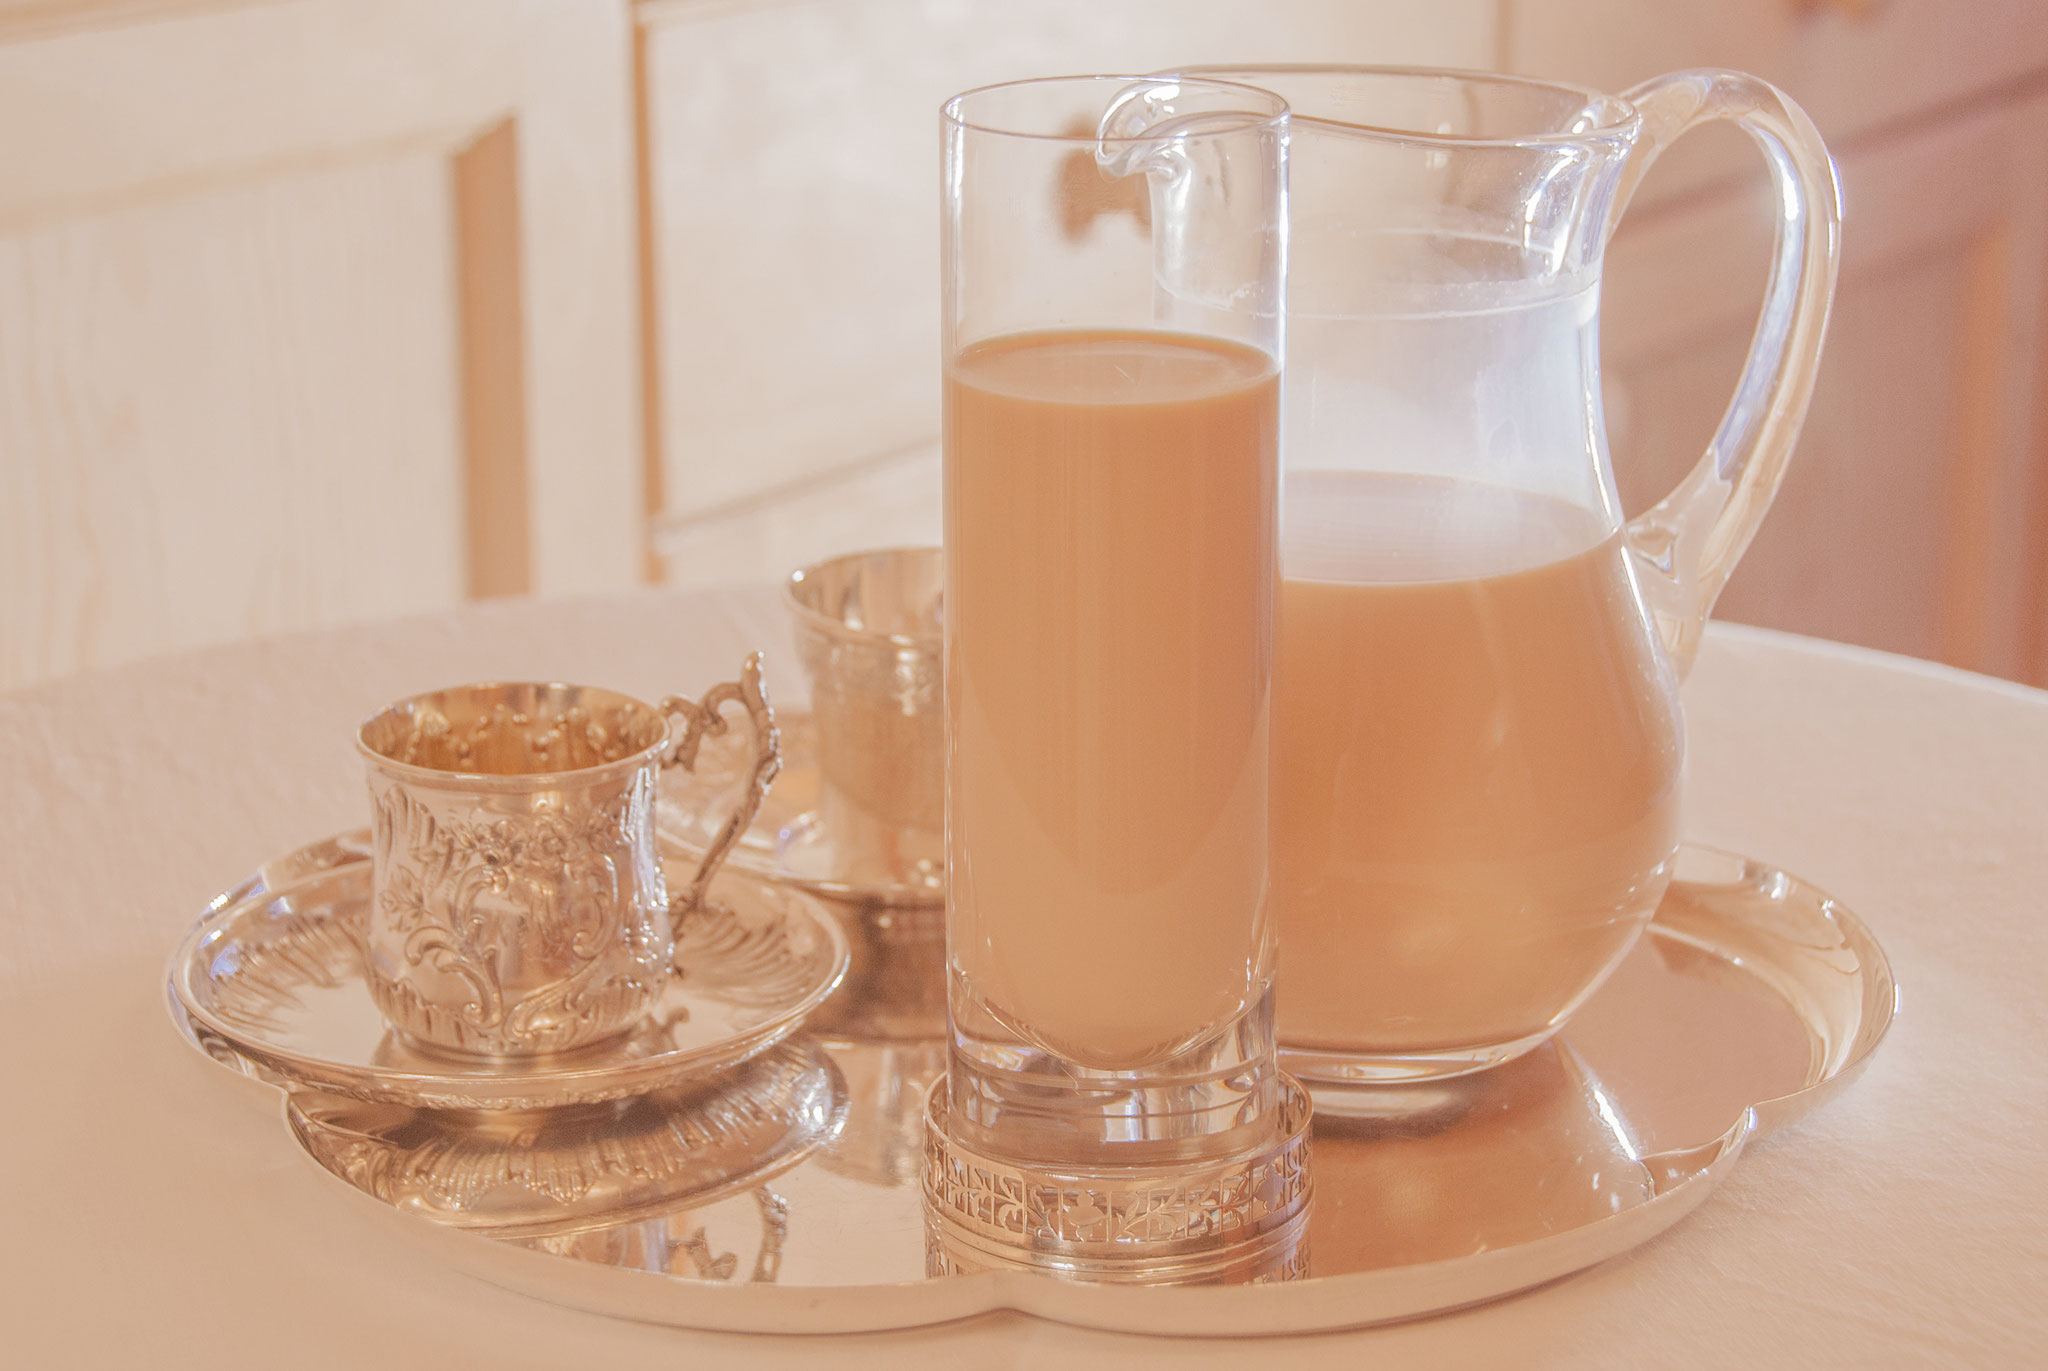 Royal Milk Tea, Afforgato with Royal Milk Tea, Fleur*Fleur*